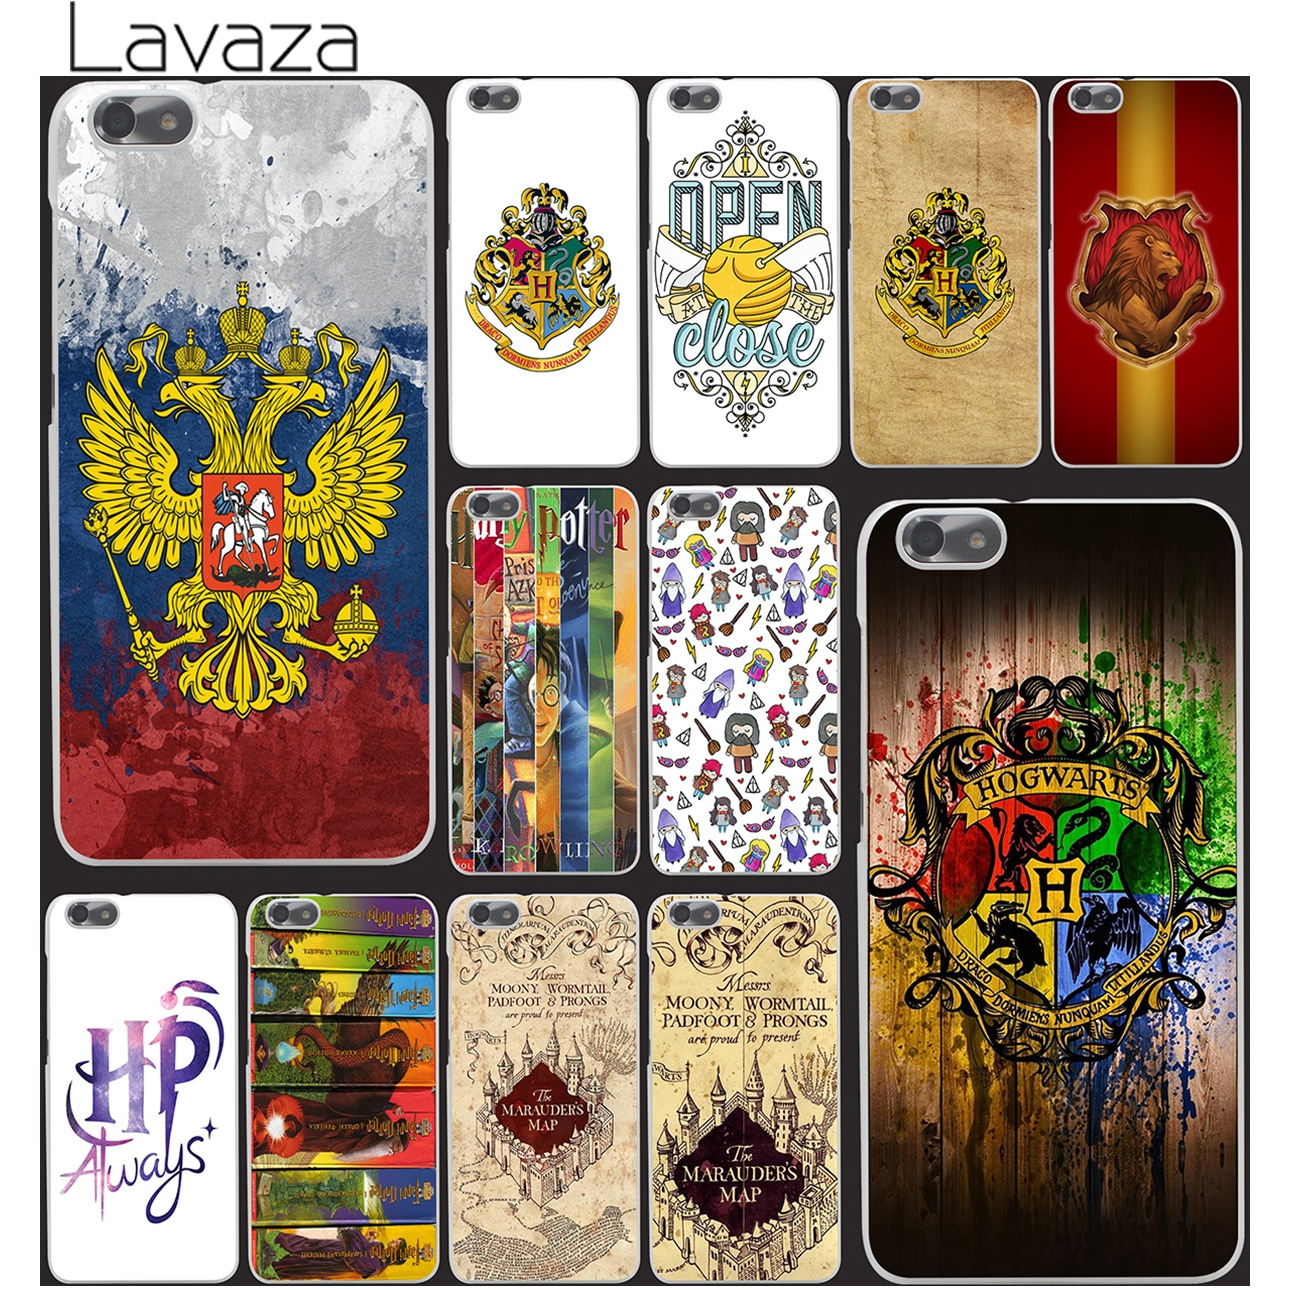 16161-OIE Vintage Russia Flag Protective Hard Case Cover for Huawei P6 P7 P8 Lite P9 Lite Plus & Honor 6 7 4C 4X G7